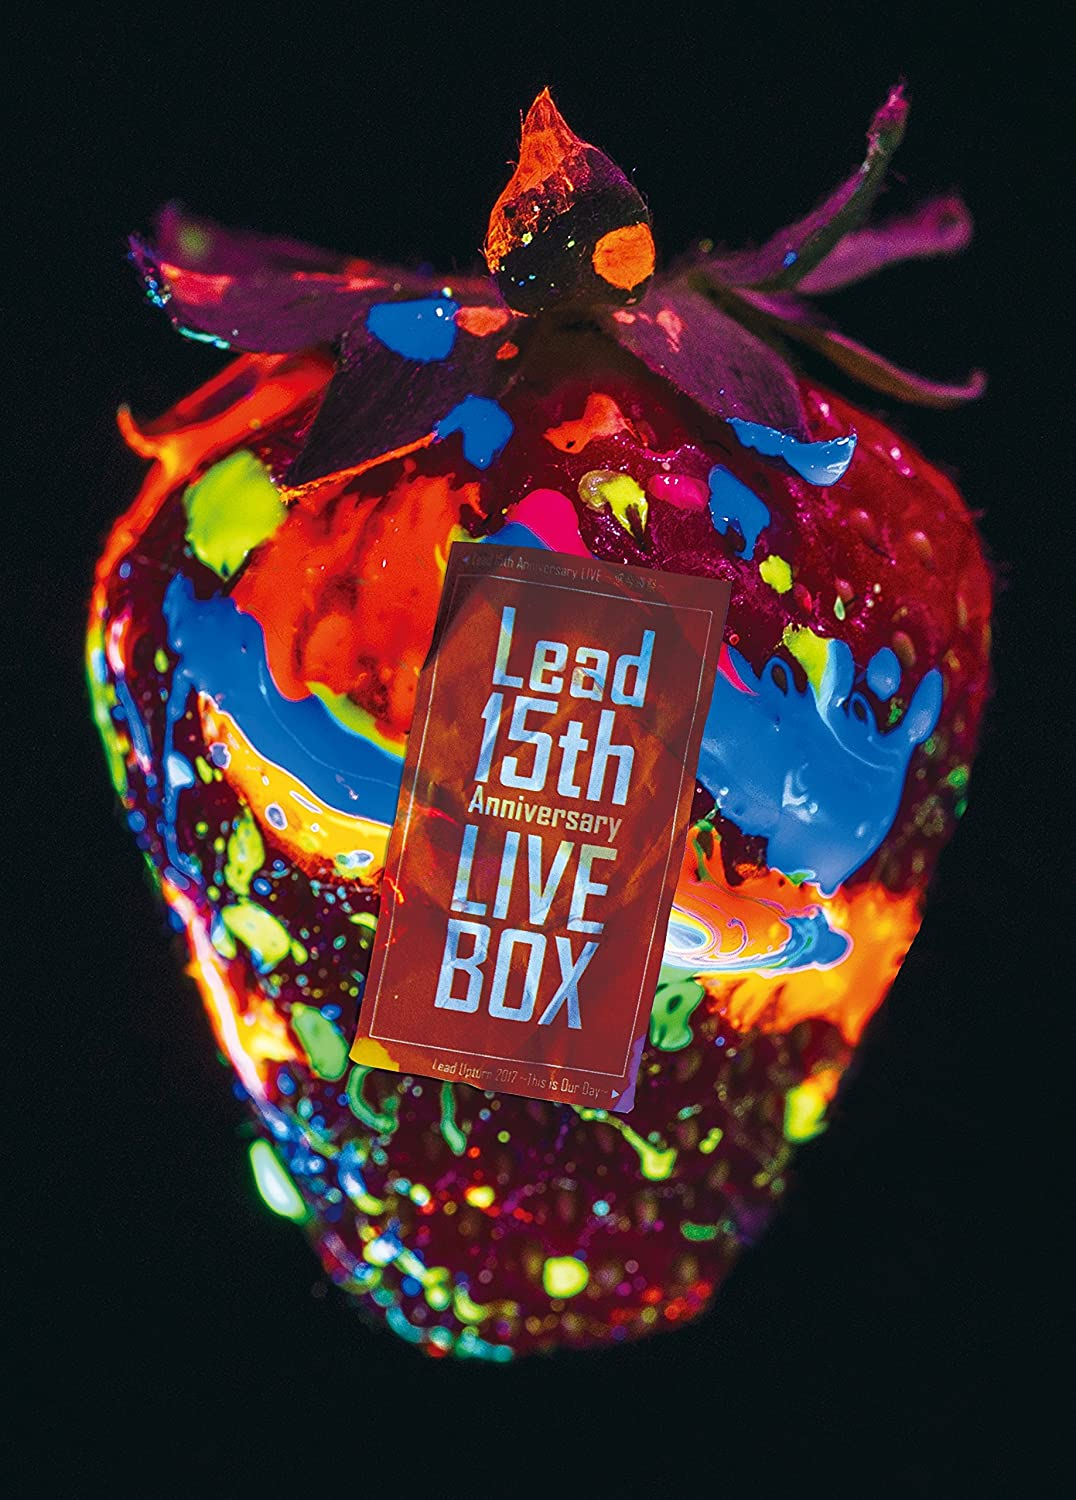 Lead 15th Anniversary LIVE BOX (特典なし) [DVD] B076B6N84Z